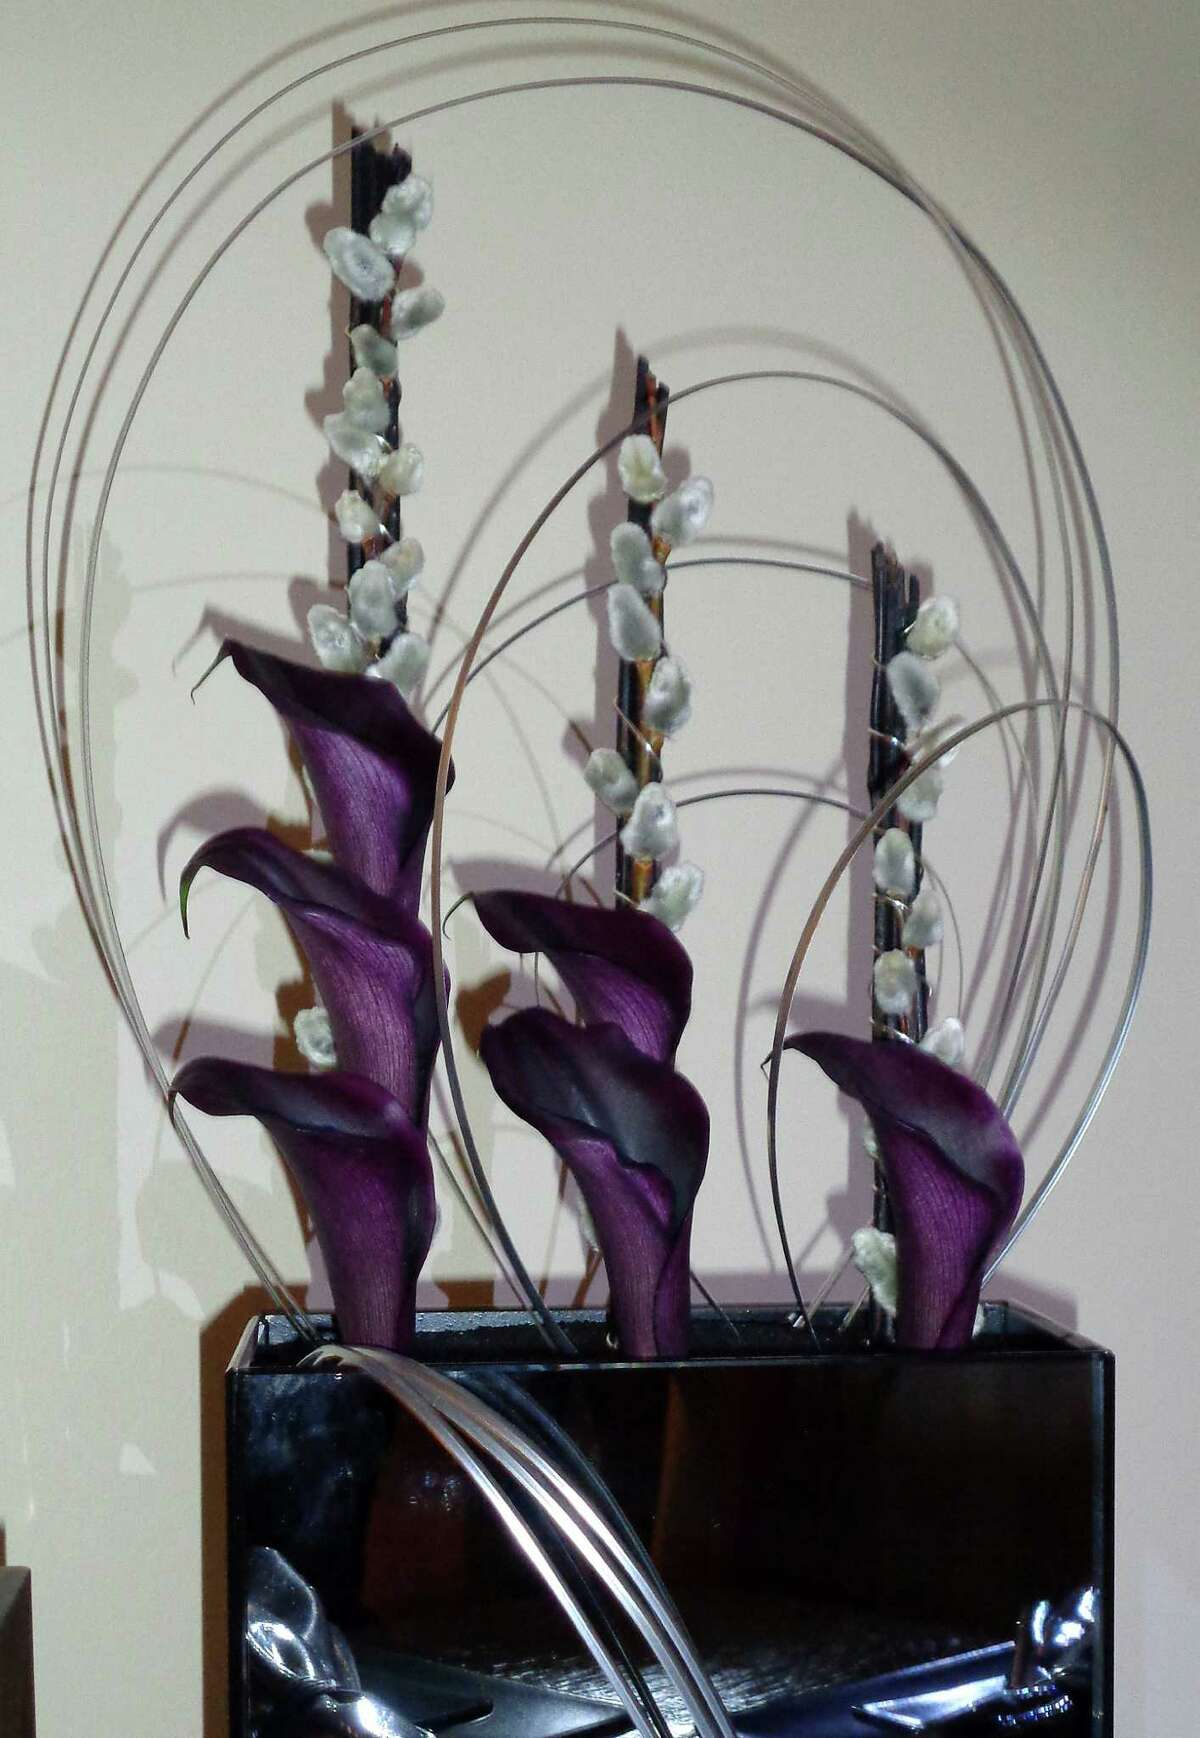 Entries in the Fairfield Garden Club's Centennial Flower Show ranged from traditional designs to more contemporary, as with this one, which reflects the 100-year history of the organization, which was started in 1915 with Mabel Osgood Wright as the first president.